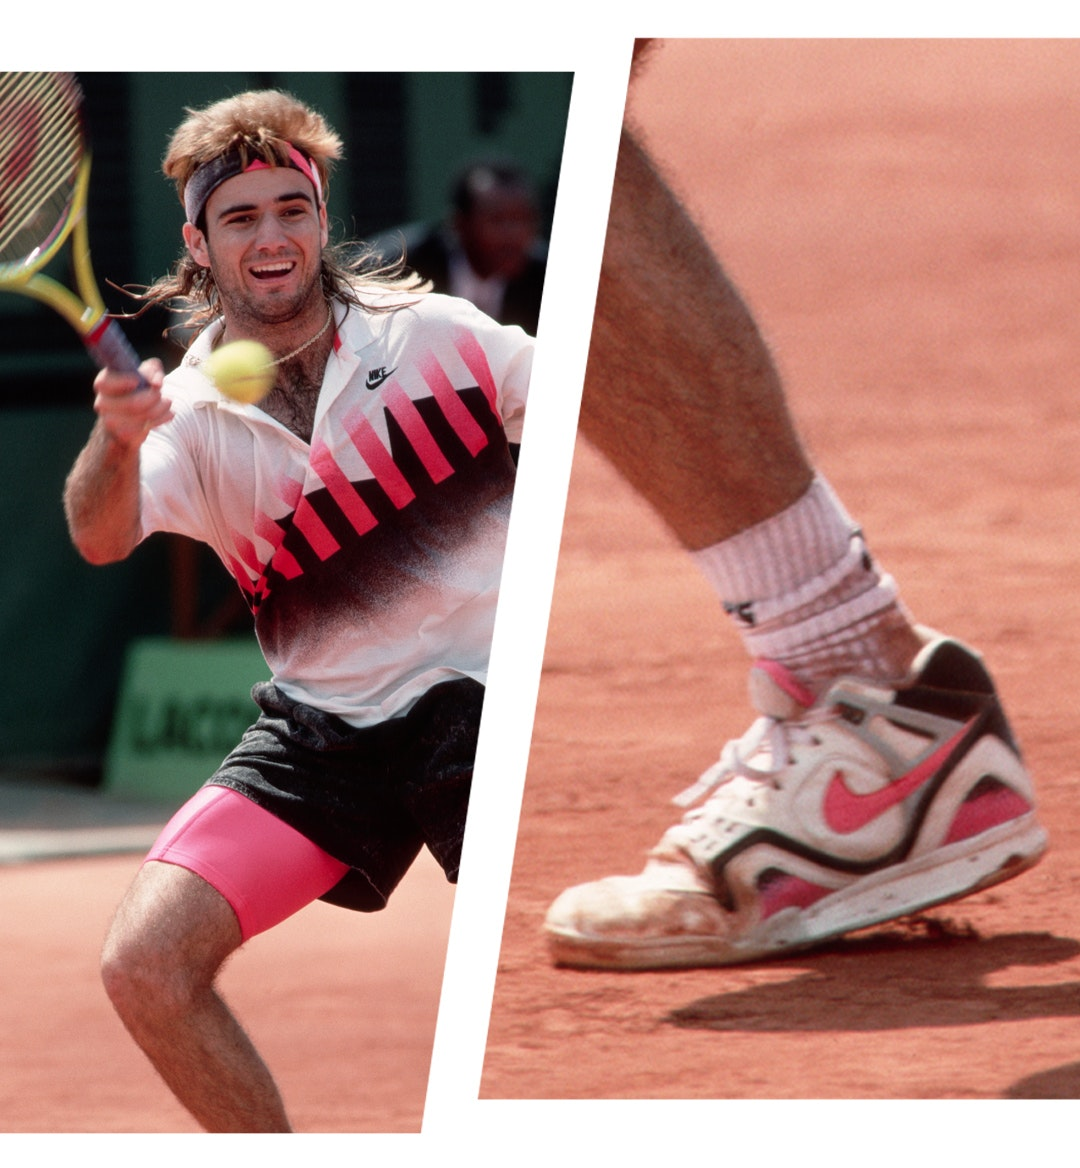 The Insane Tennis Sneakers From the